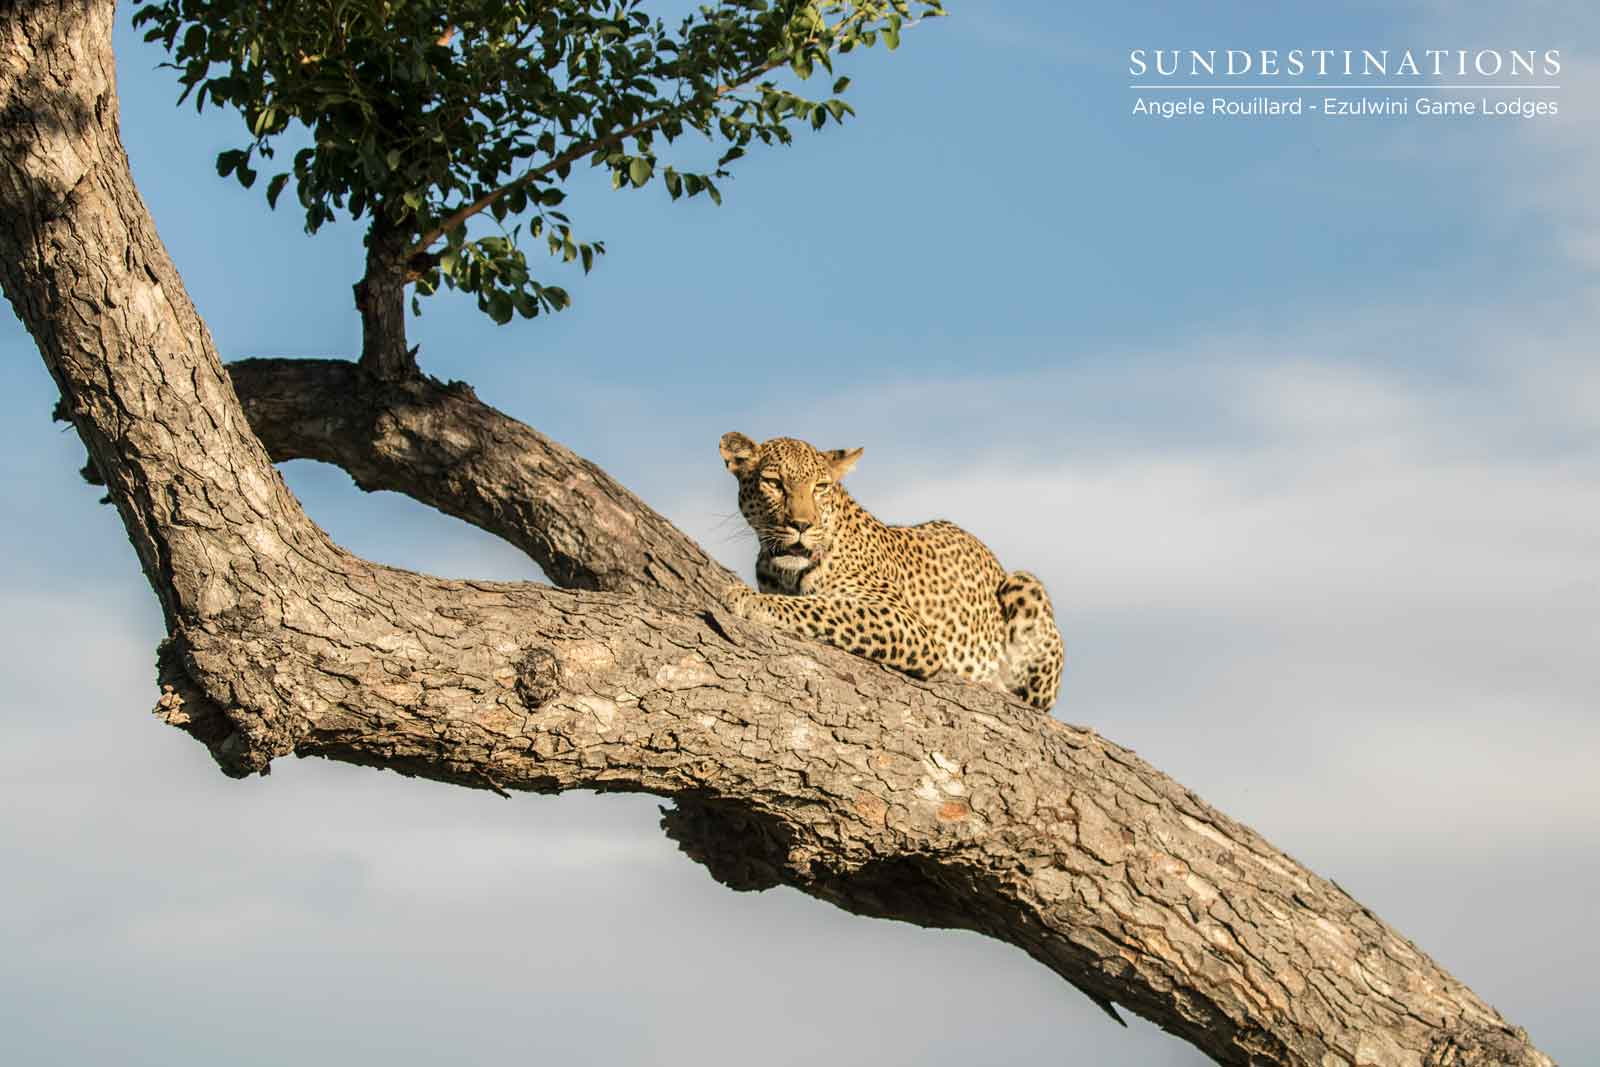 Leopards of Ezulwini Game Lodges